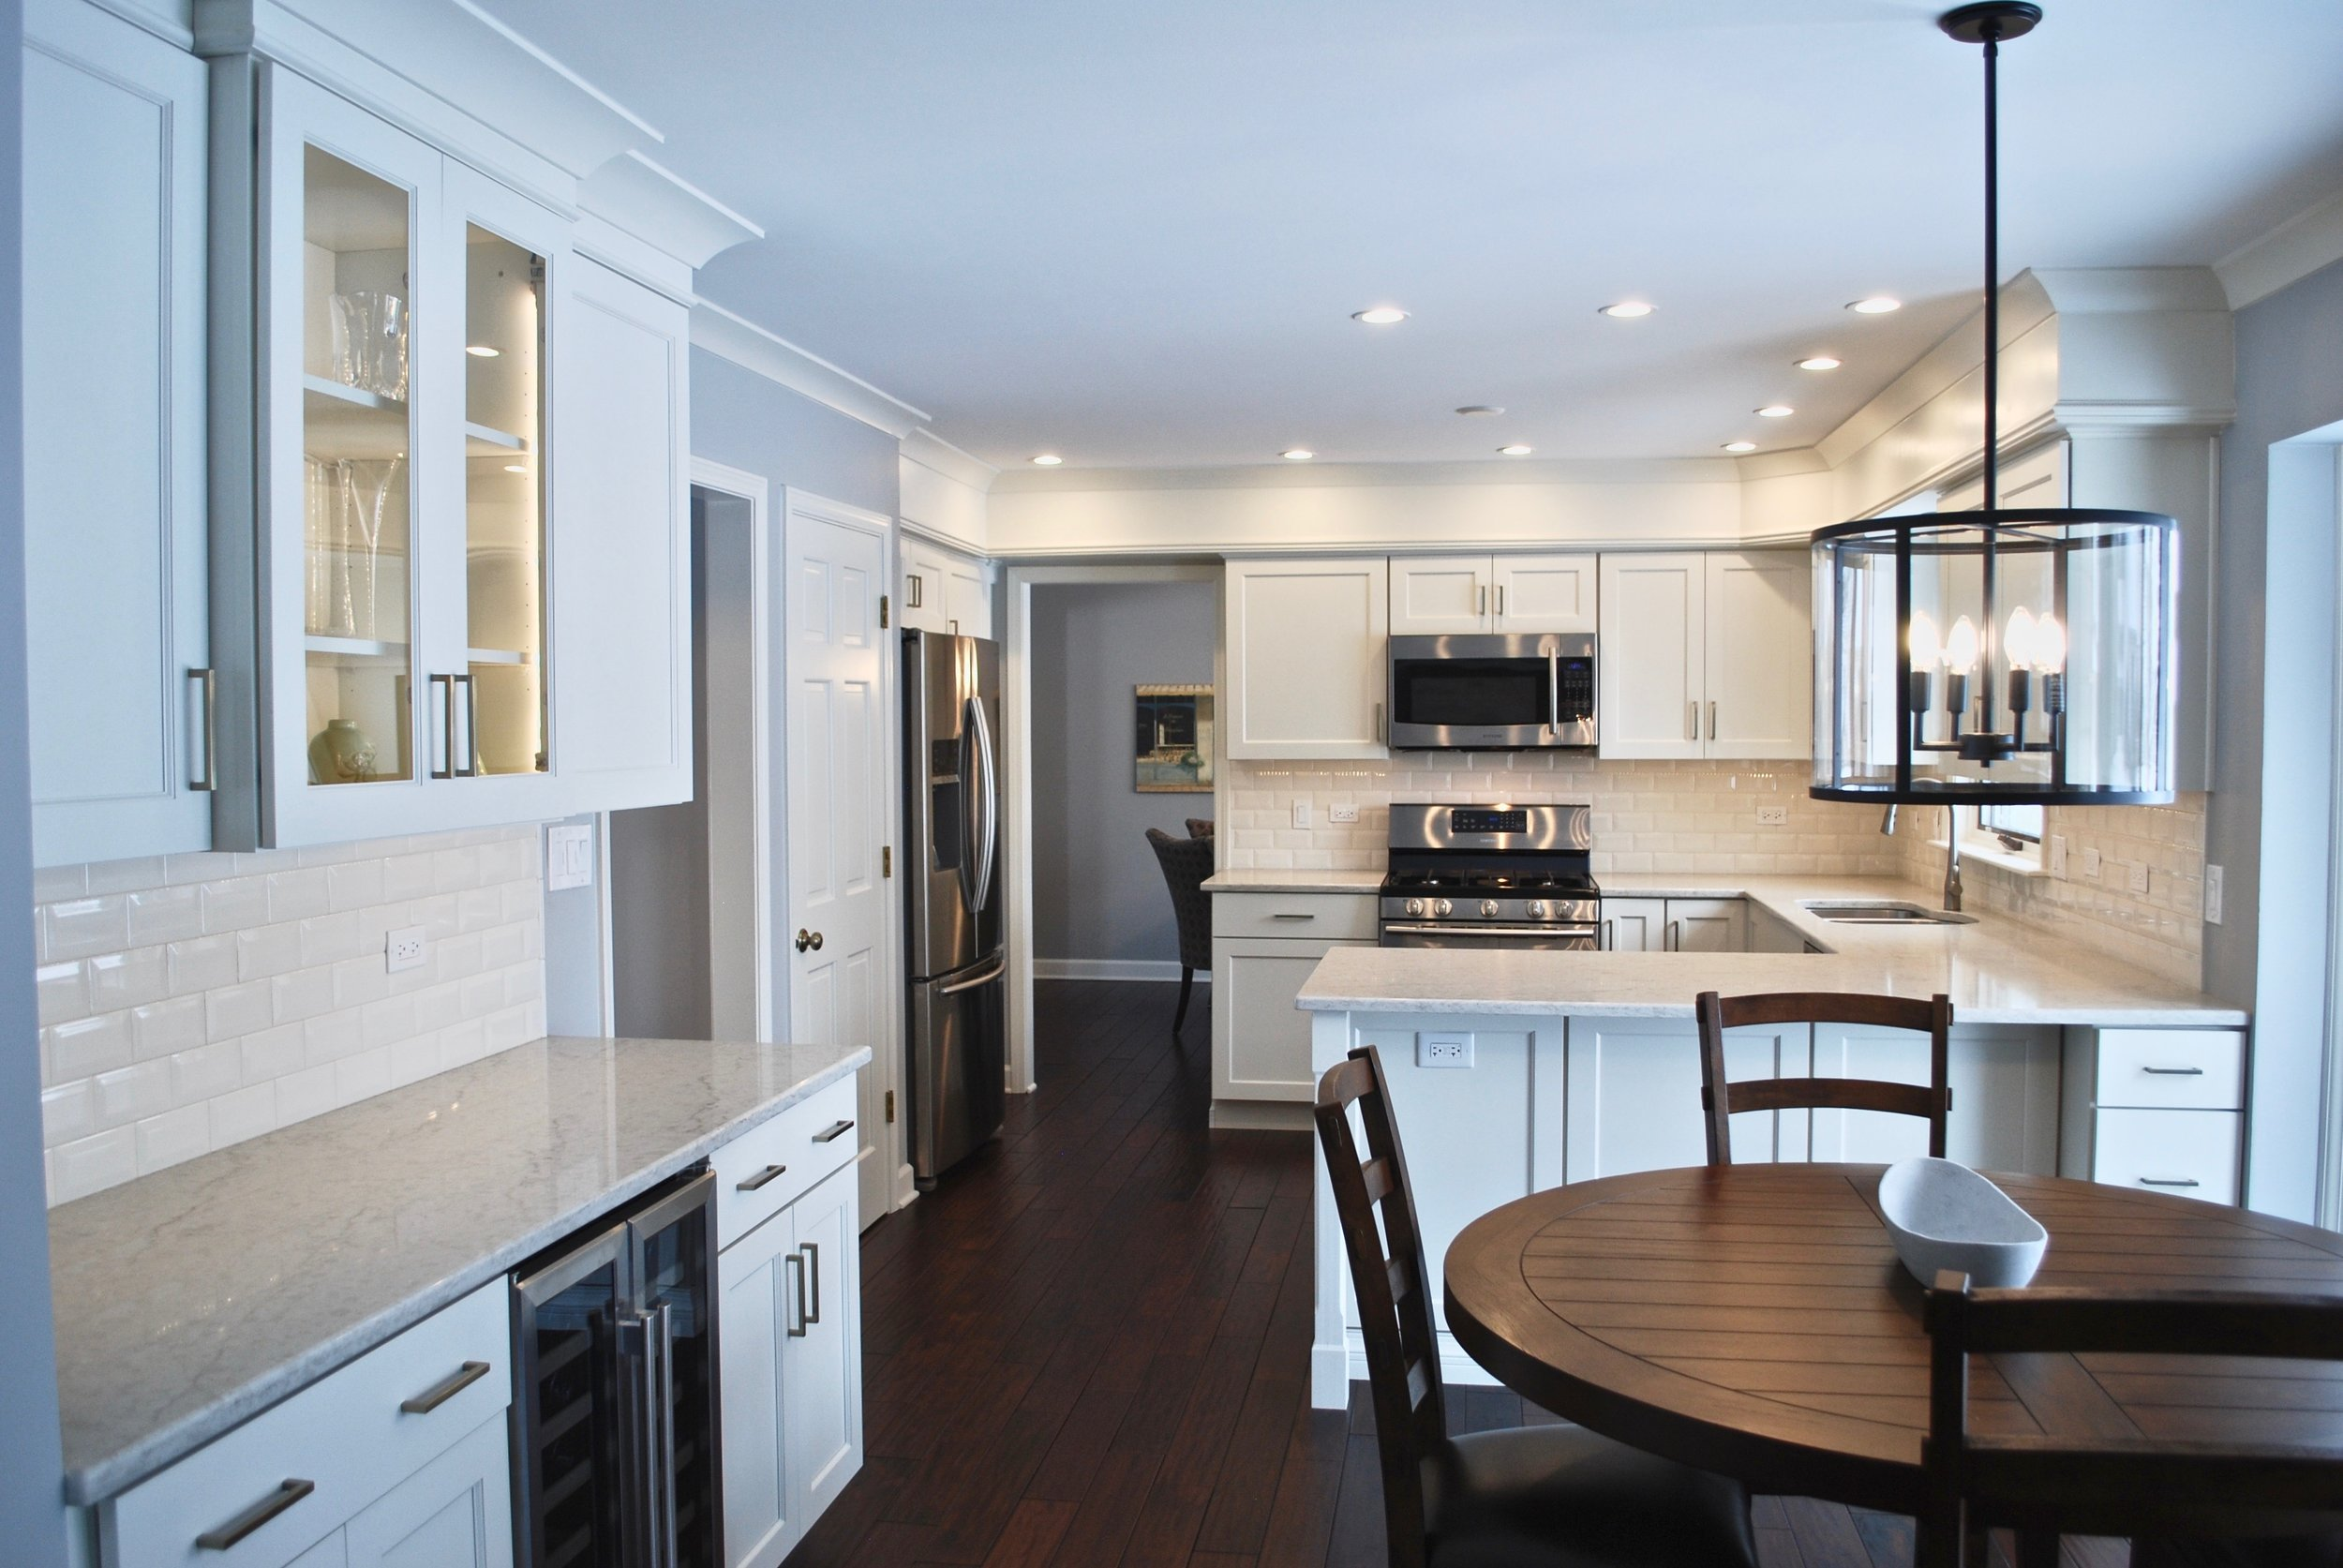 ST. CHARLES KITCHEN DESIGN